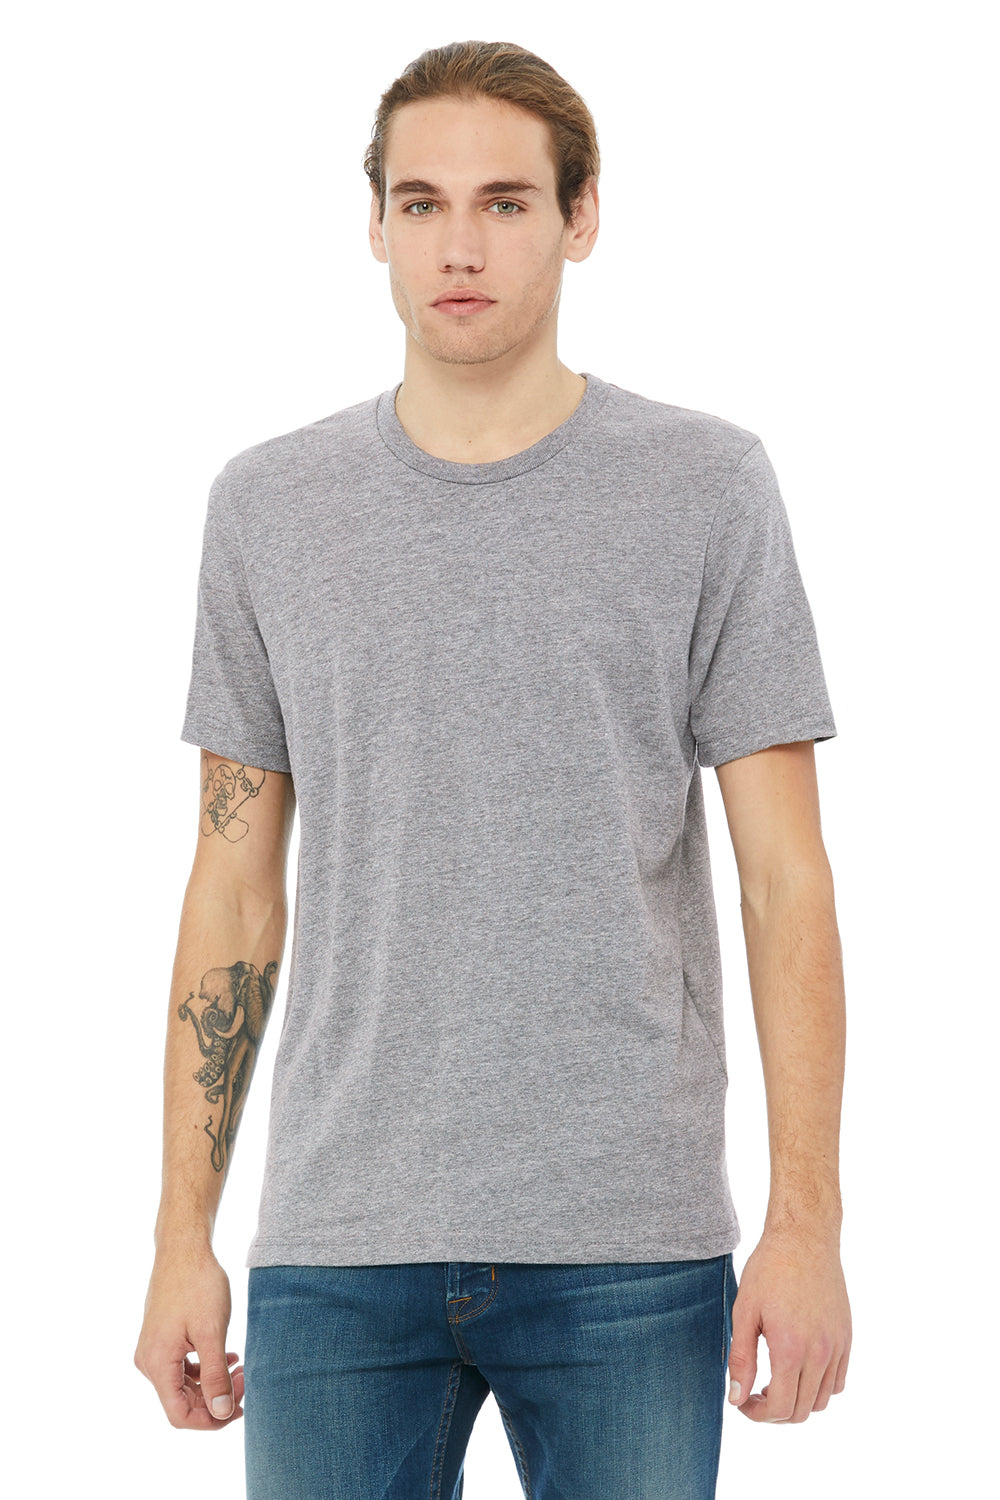 Bella + Canvas 3091 Mens Short Sleeve Crewneck T-Shirt Heather Grey Front